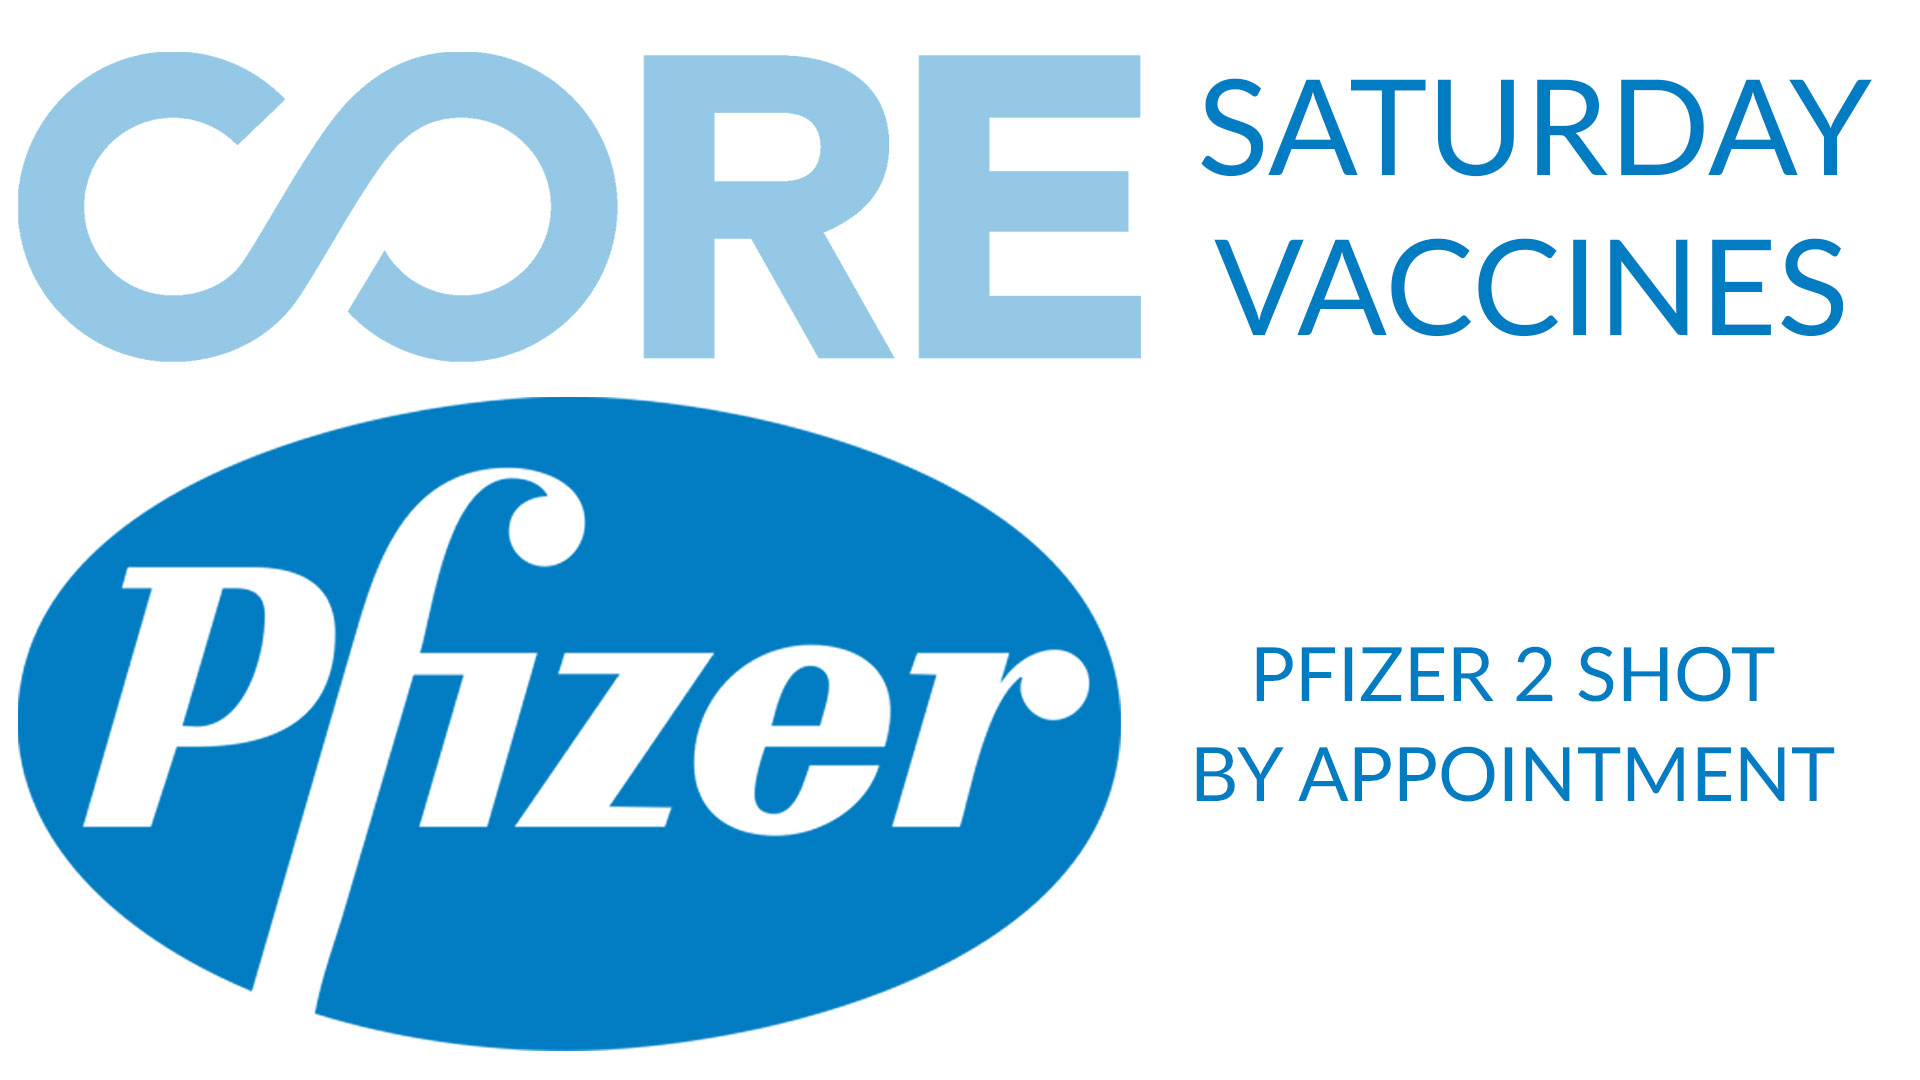 Saturday Vaccine Clinics CORE Pfizer 2 shot by appointment